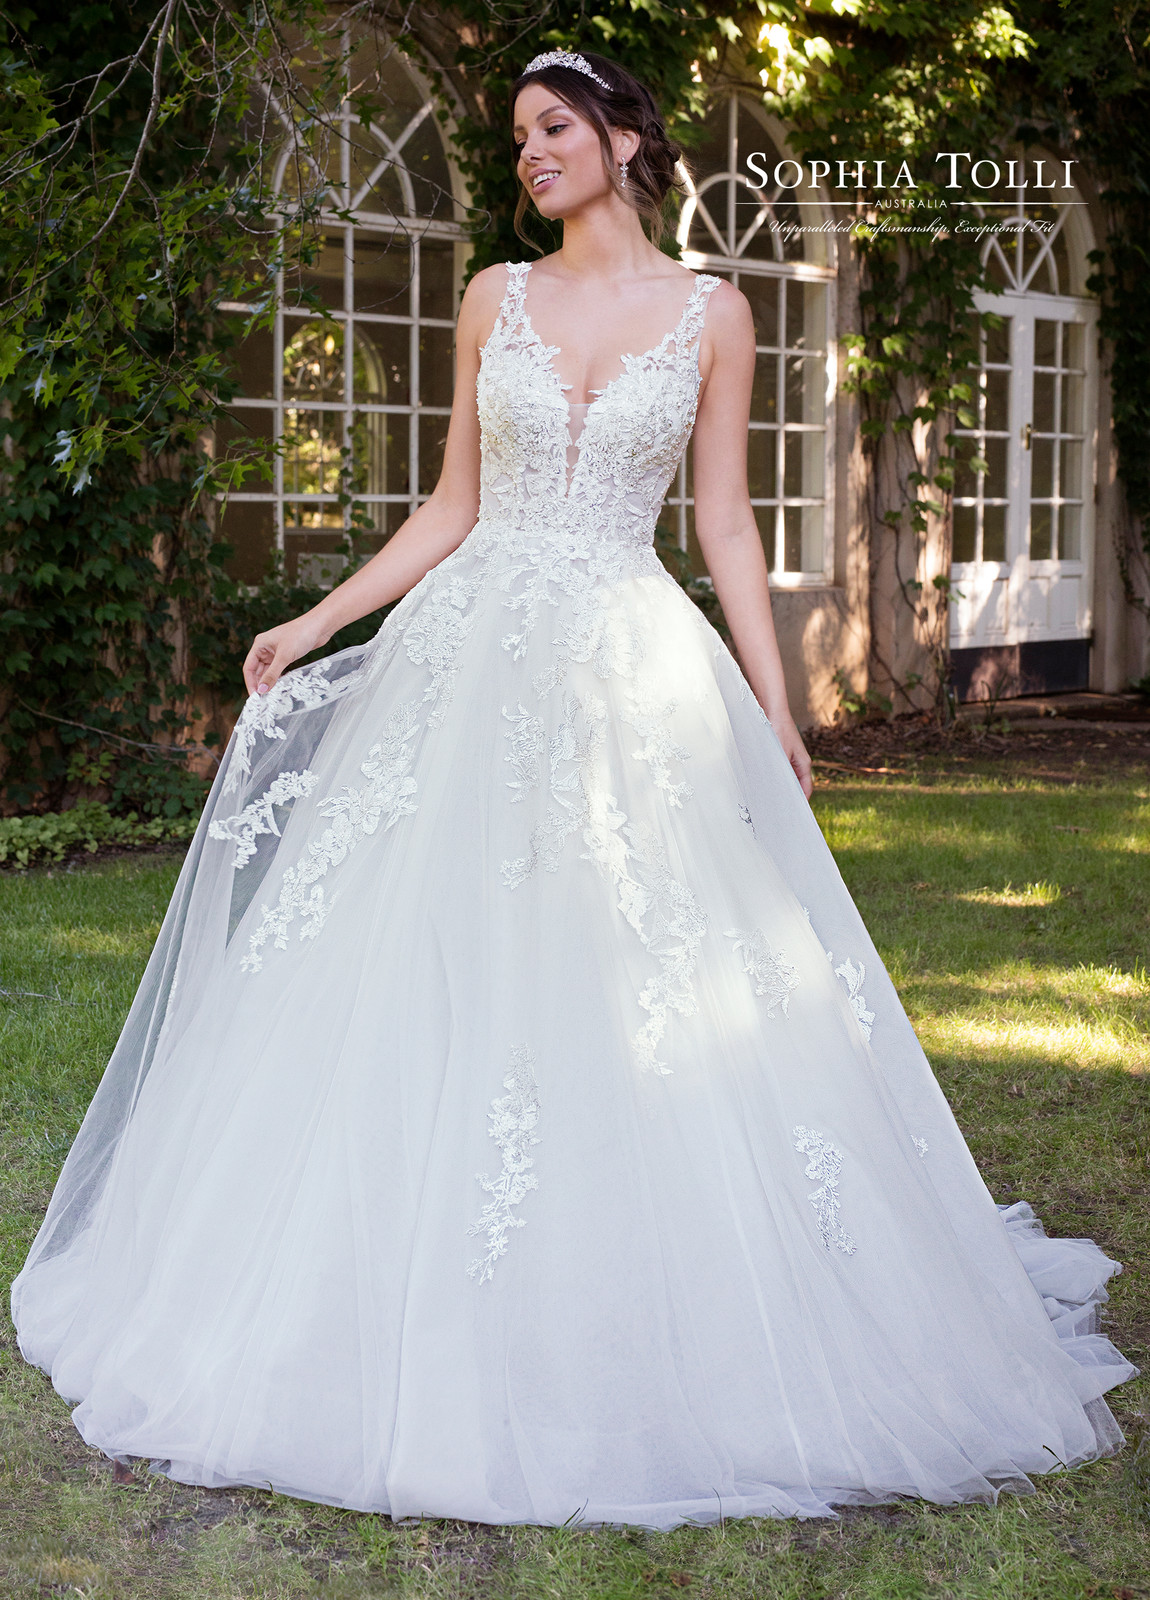 Plus Size Wedding Dress Shops In Michigan - raveitsafe